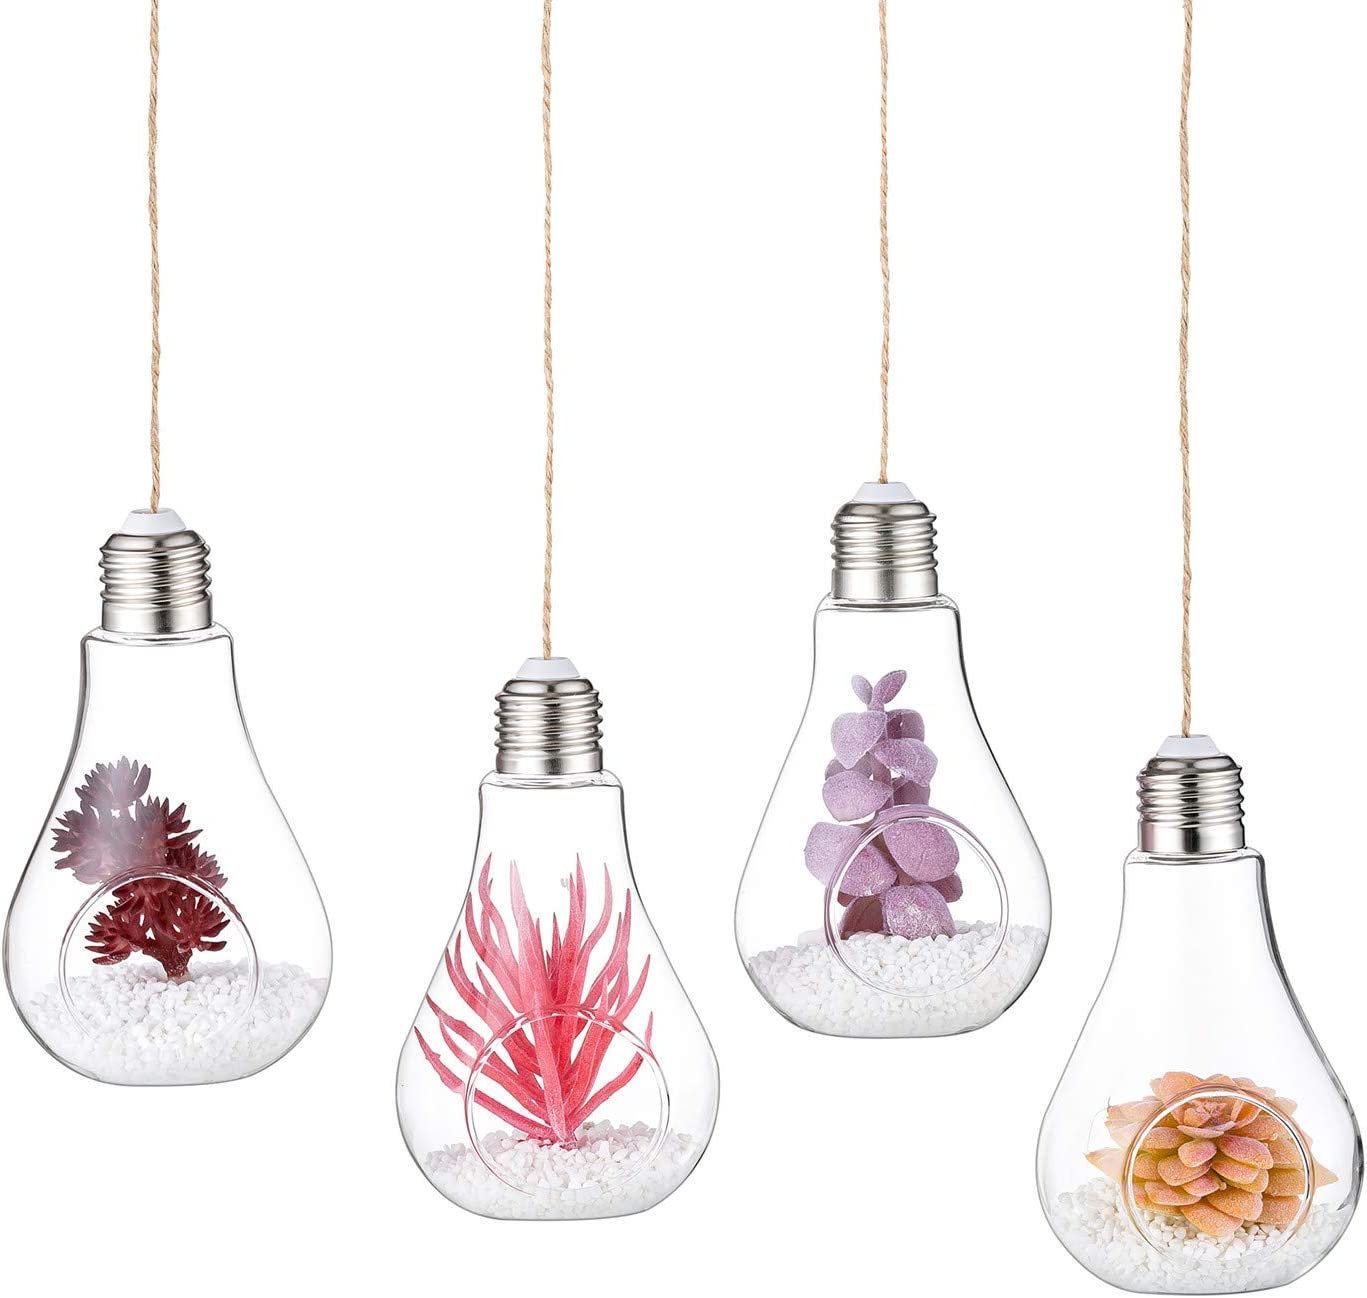 Glasseam Clear Glass Hanging Planter, Creative Glass Bulb Terrarium Container, for Tiny Air Plant Succulent DIY Decor Home Garden Decor (4Pcs)